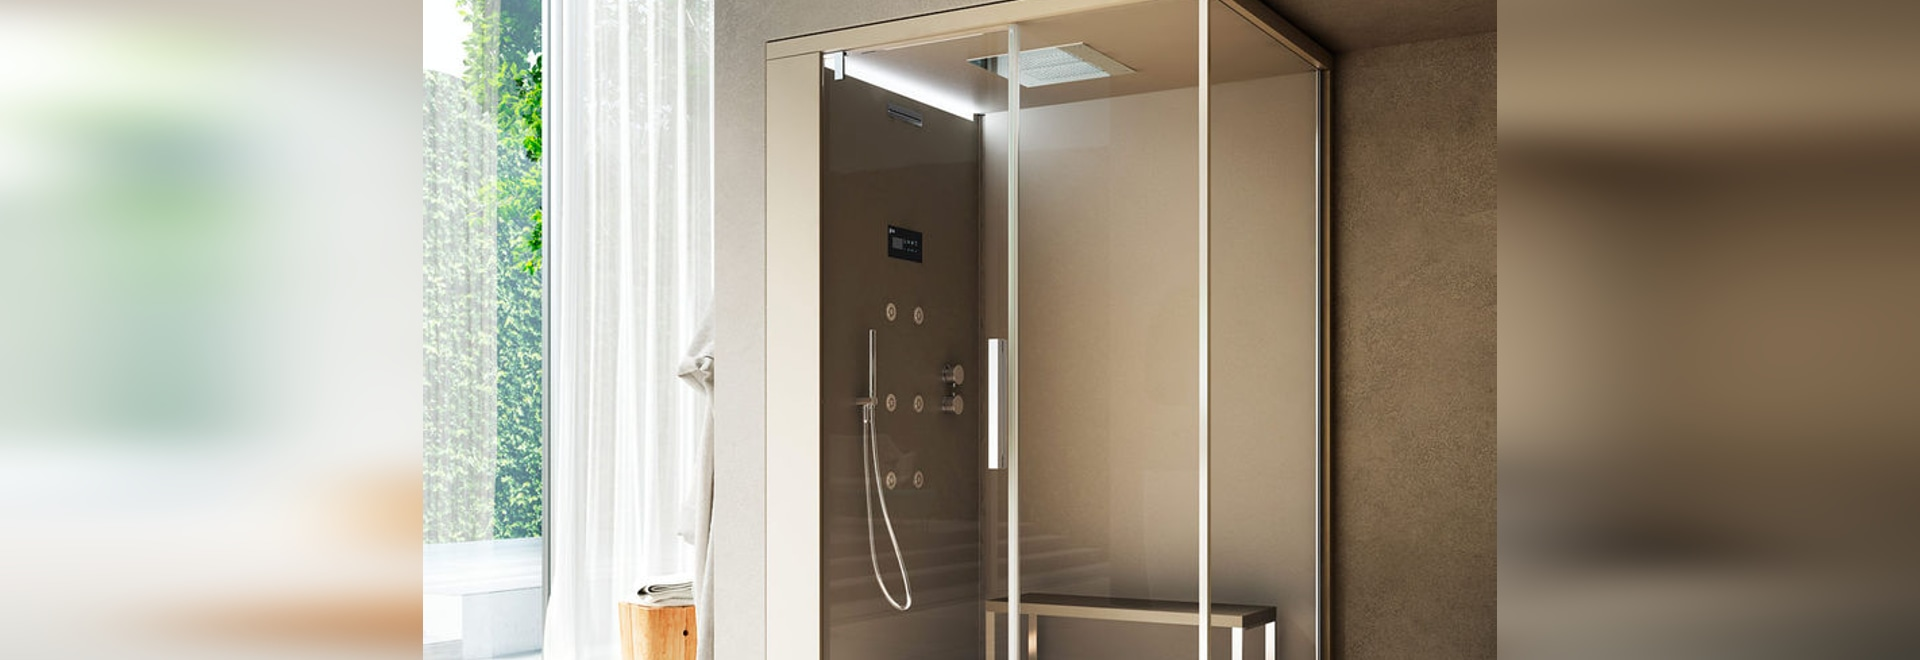 NEW: steam shower cubicle by GLASS 1989